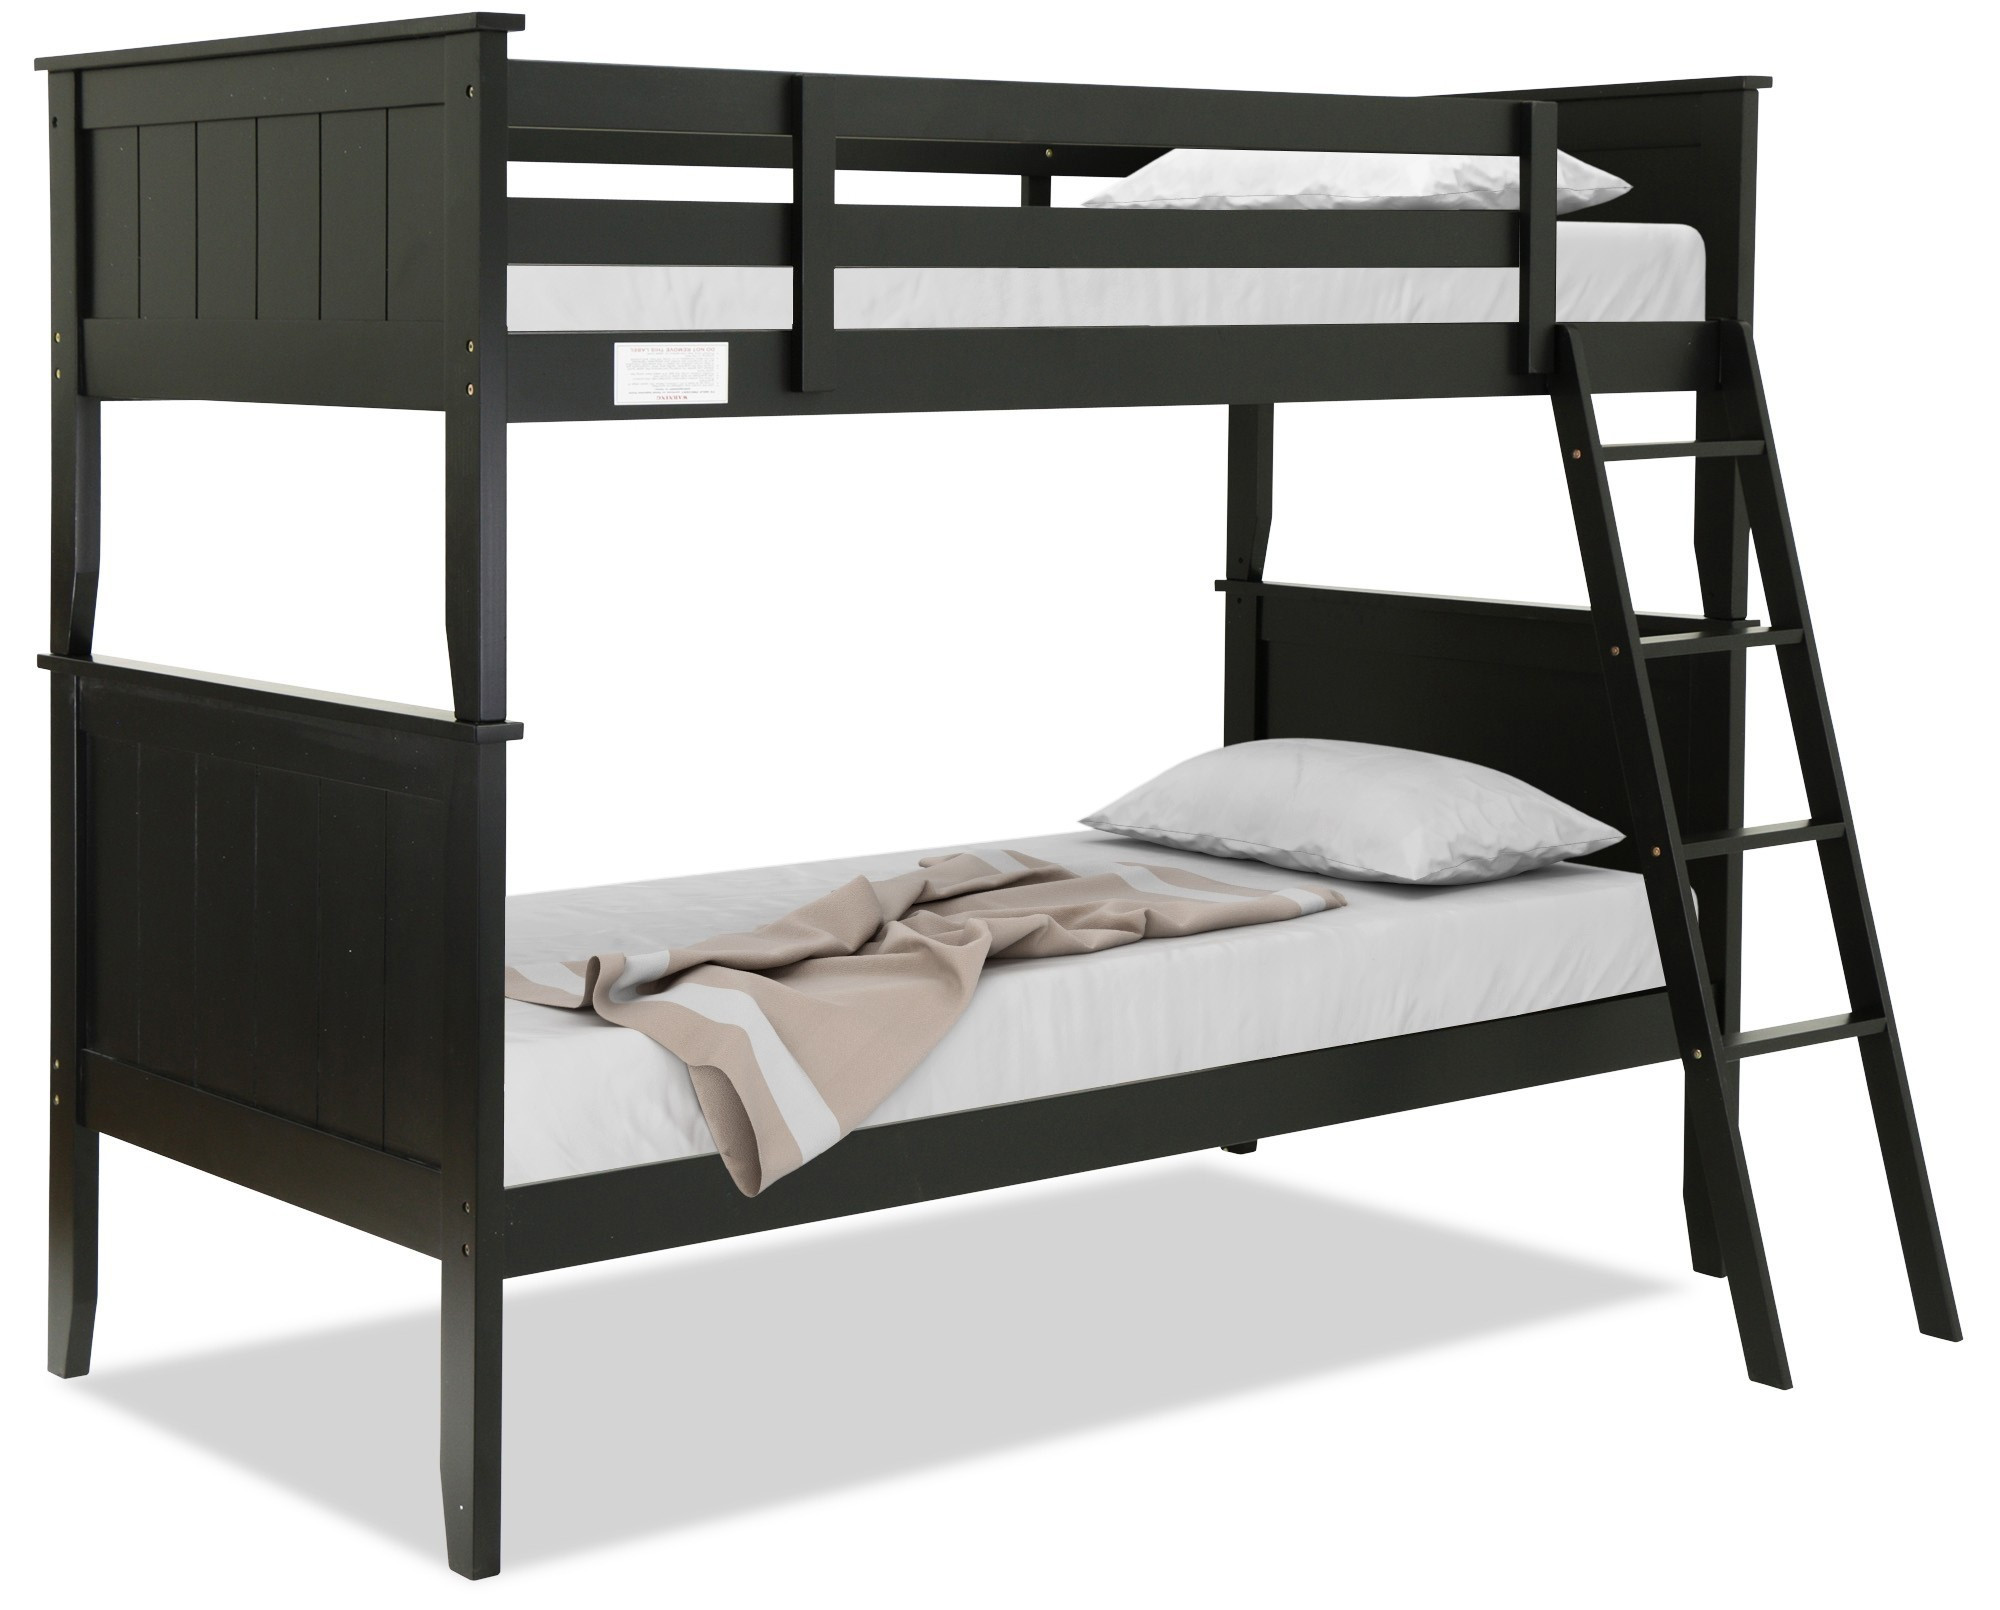 Agatha Wooden Bunk Bed Black Furniture Home Decor Fortytwo